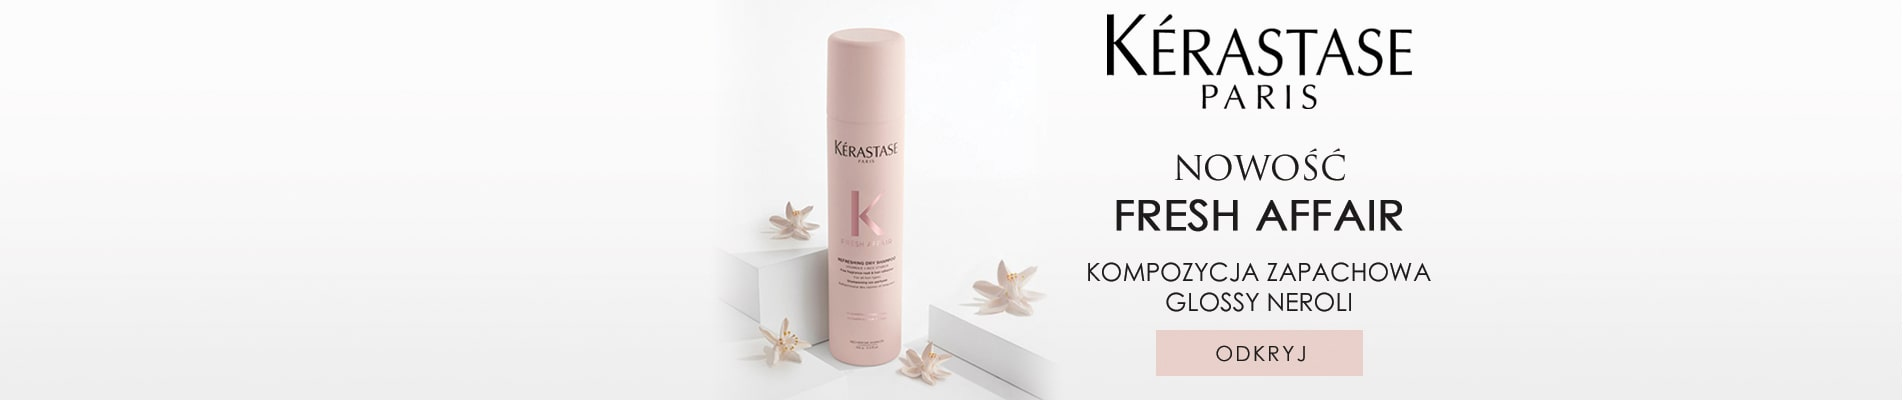 kerastase-fresh-affair